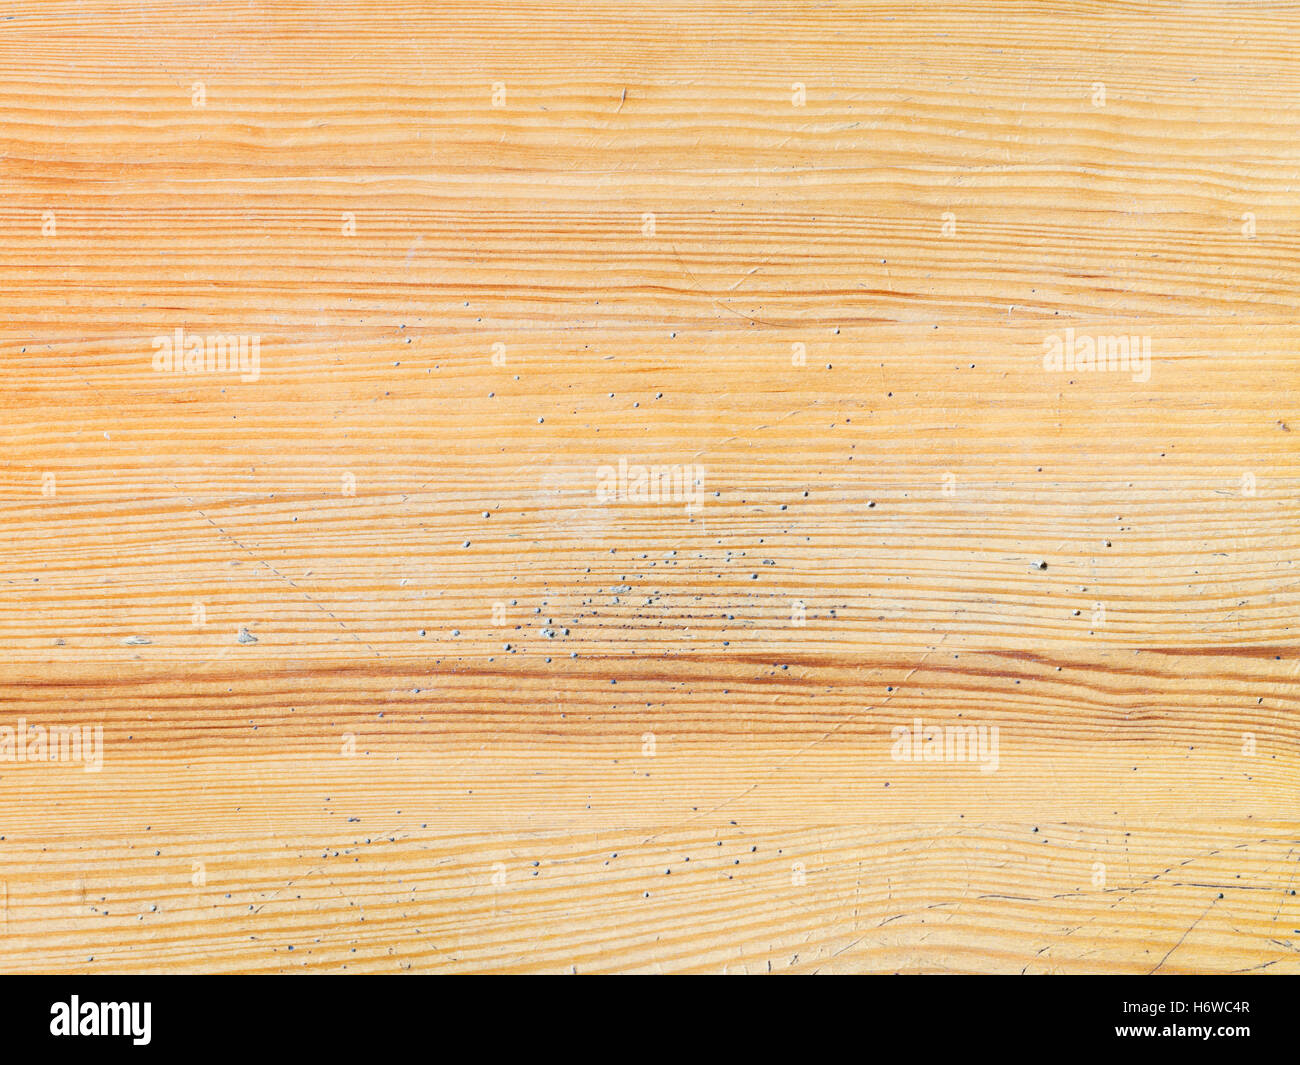 board desk wood pine material drug anaesthetic addictive drug surface timber parquet used painted pattern hardwood - Stock Image